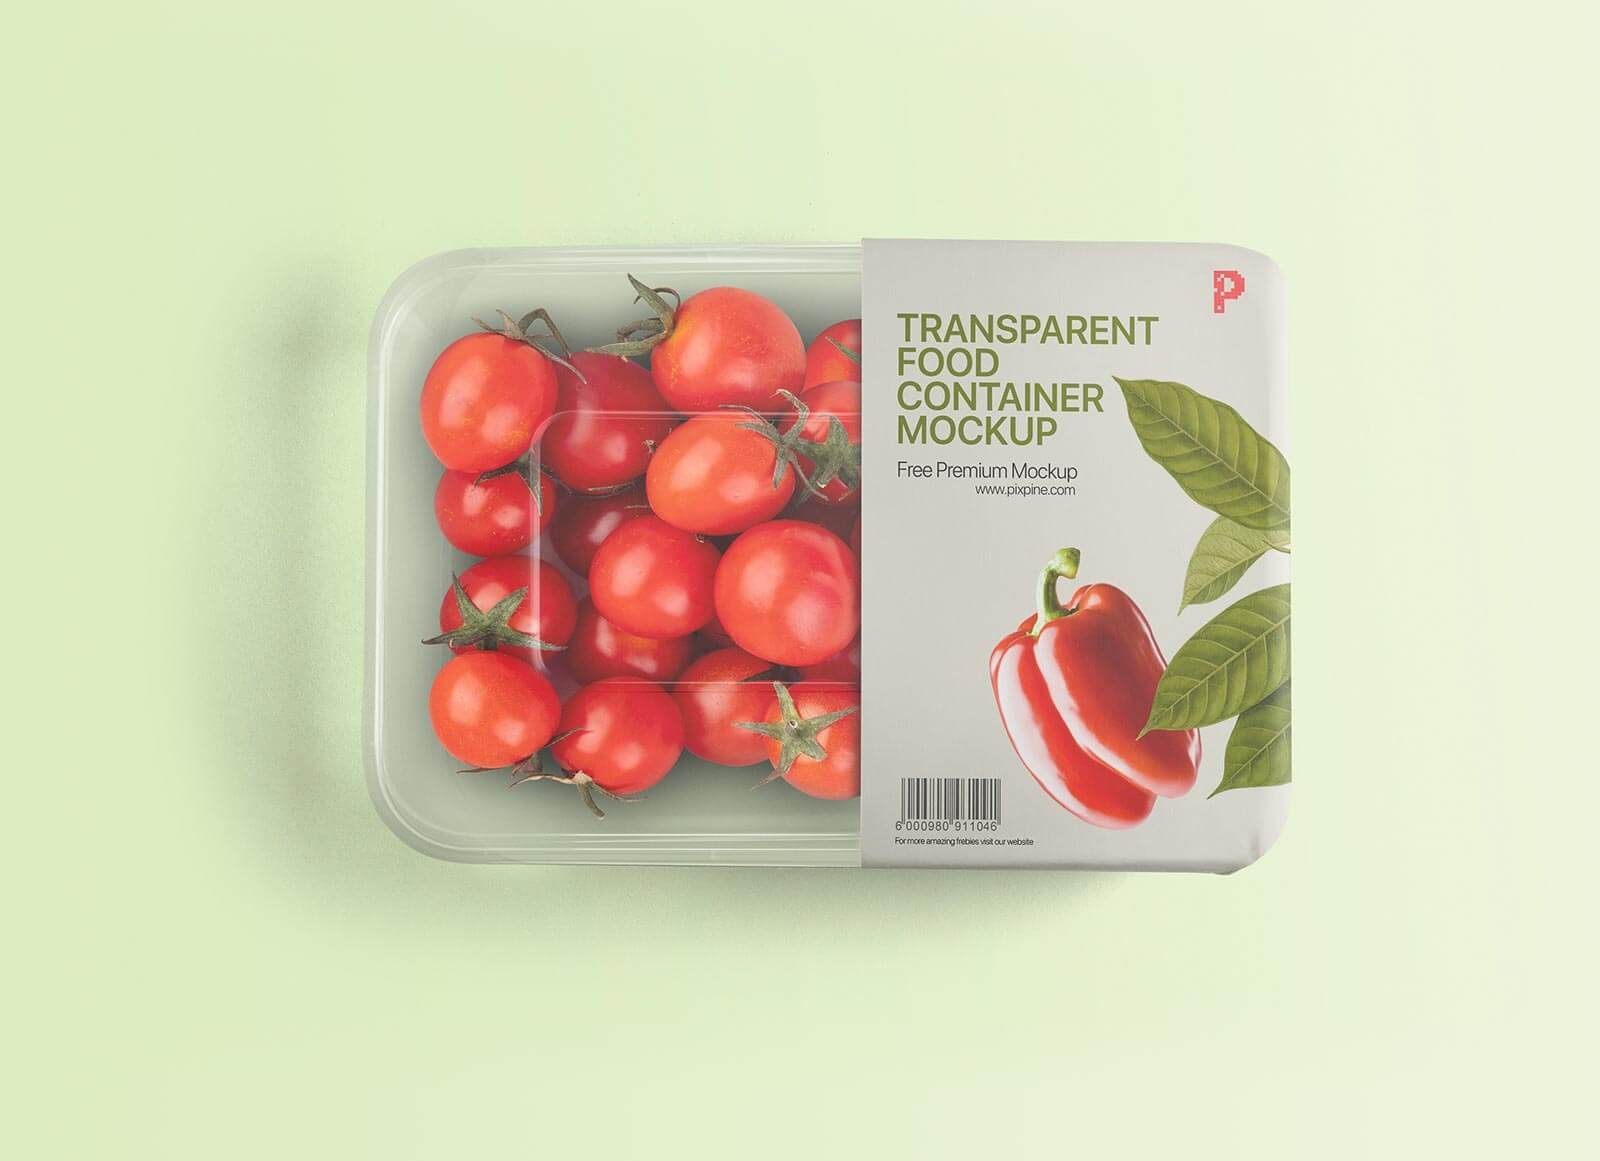 Free Transparent Vegetable Food Container Mockup PSD